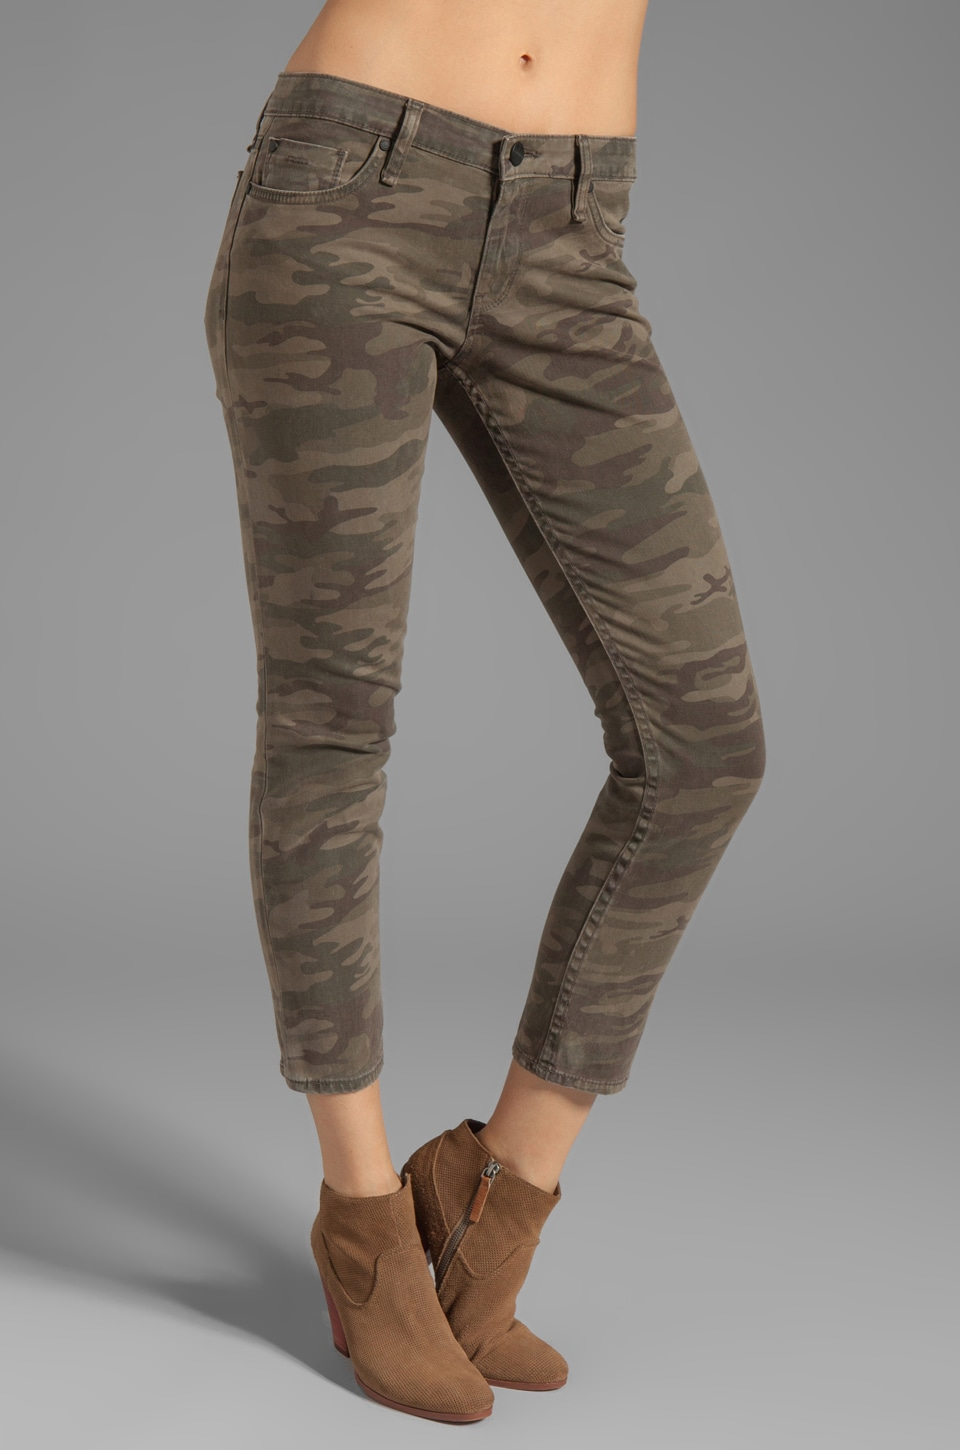 Sanctuary Modern Nomad Camo Charmer Capri in Safari